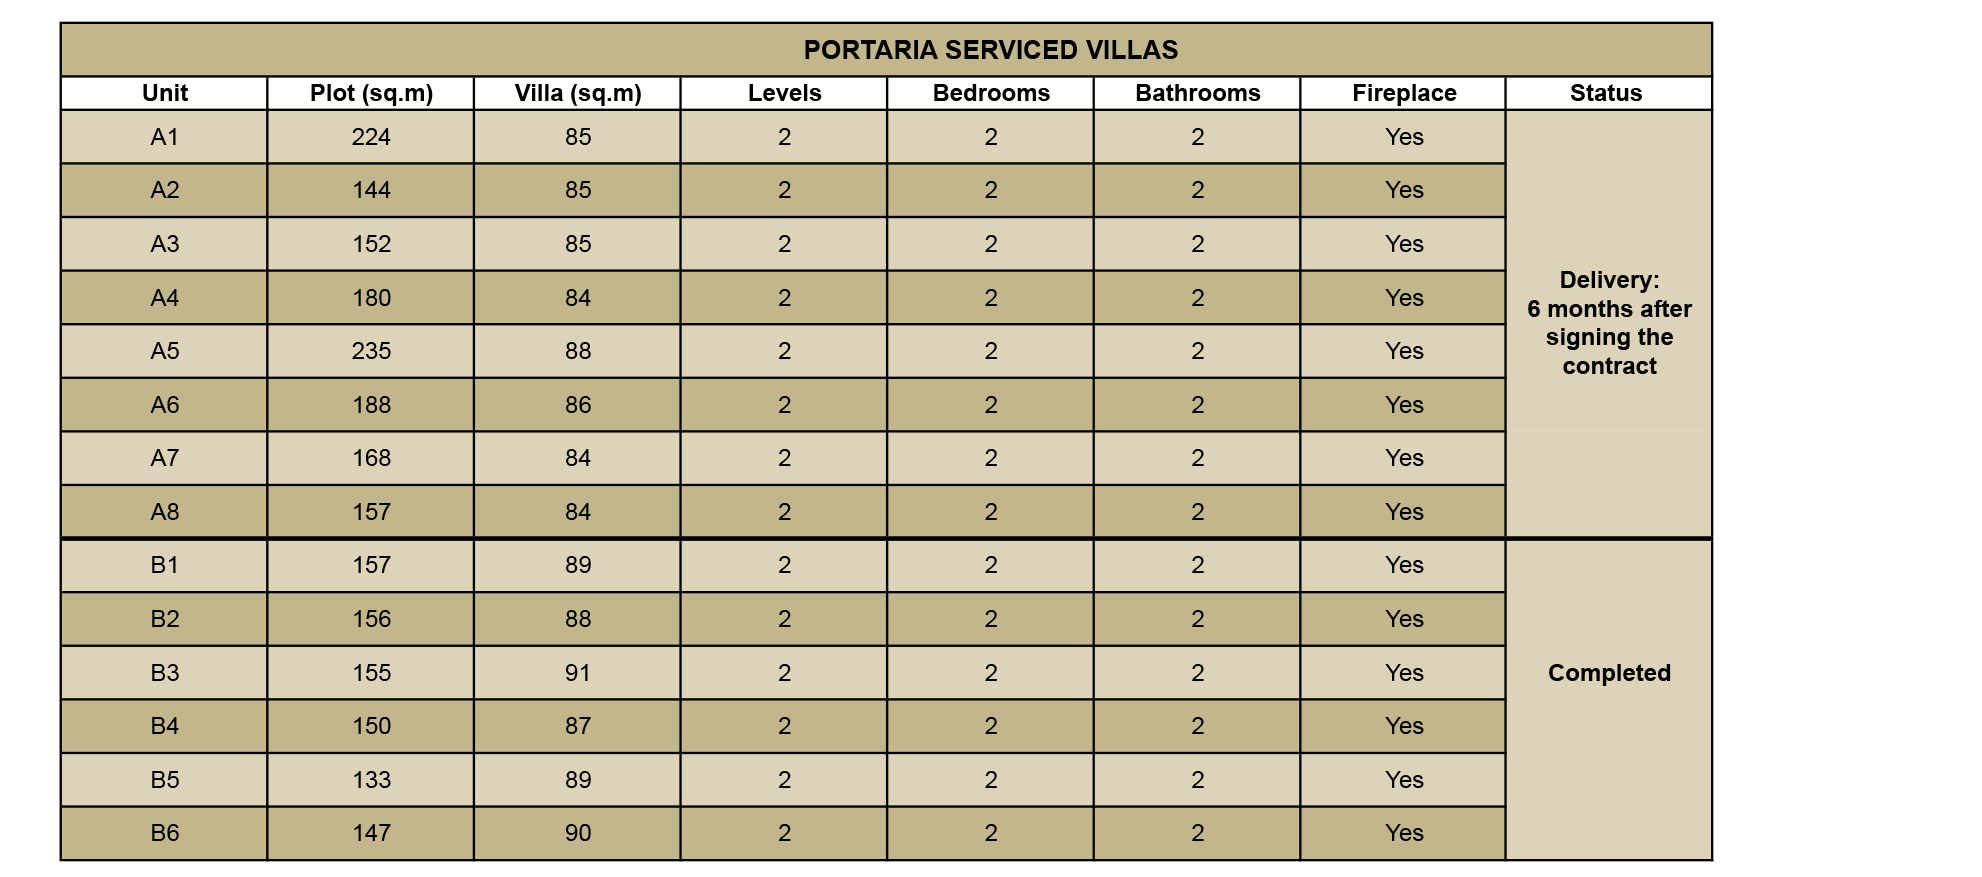 Portaria Serviced Villas The information presented herein is to be used for reference only